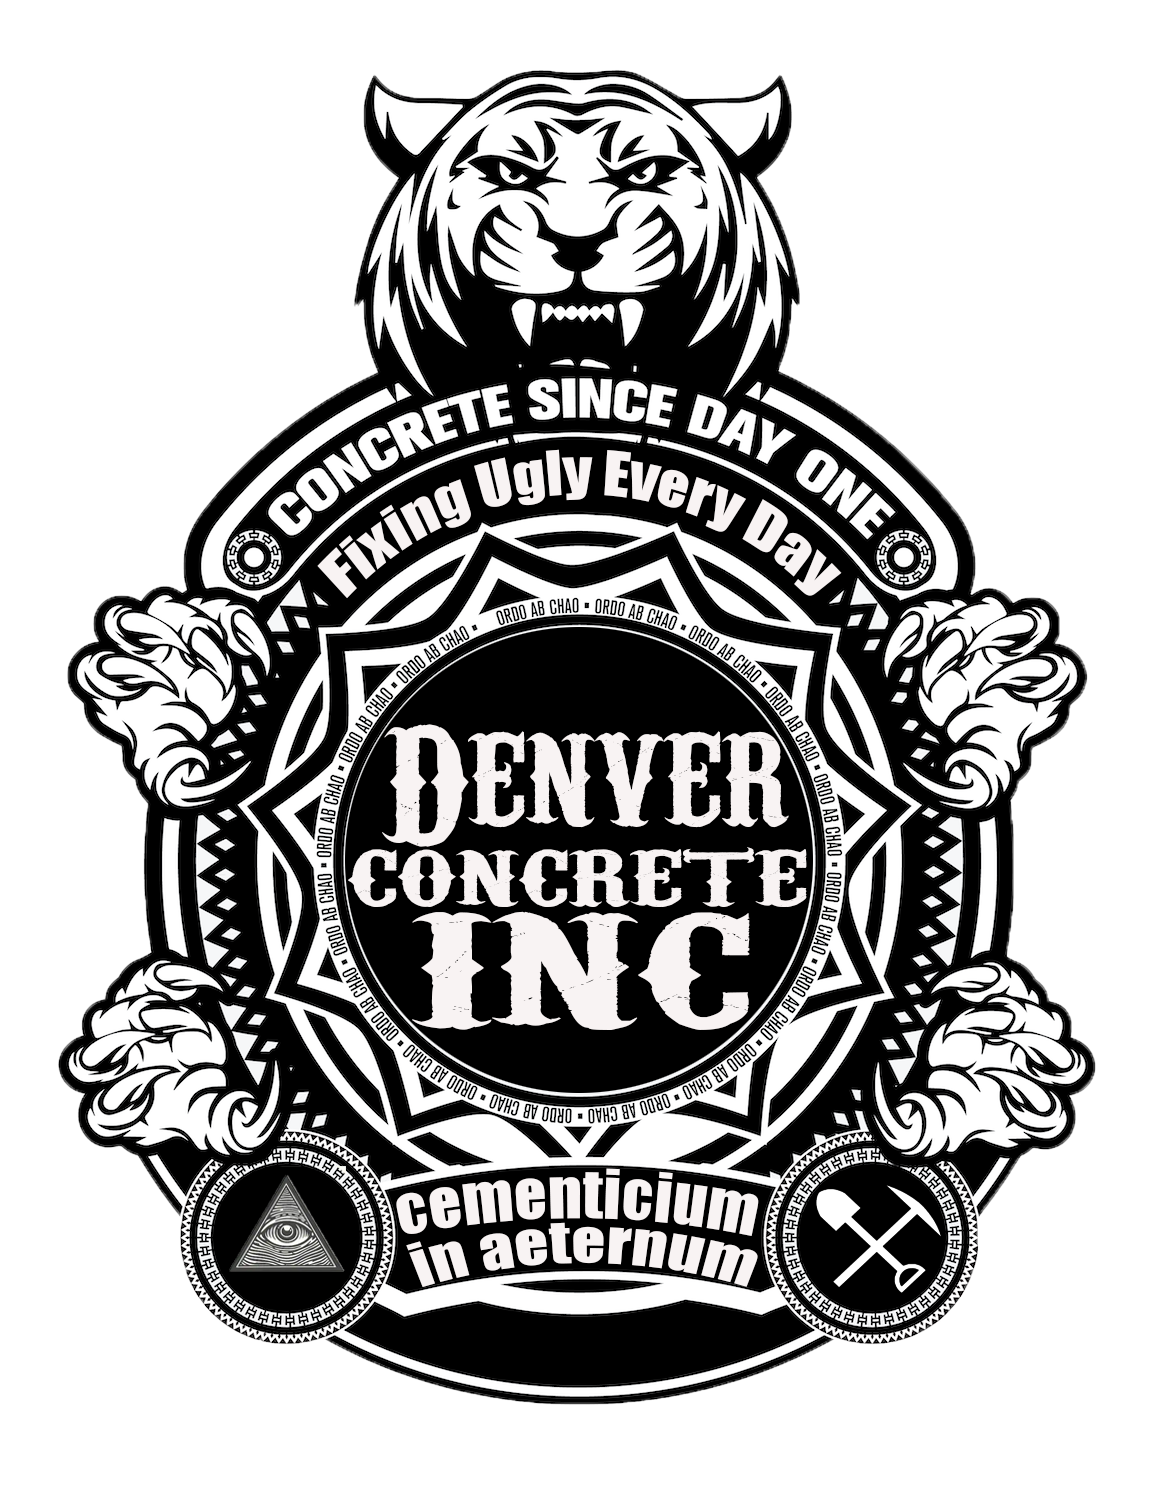 Denver Concrete Inc